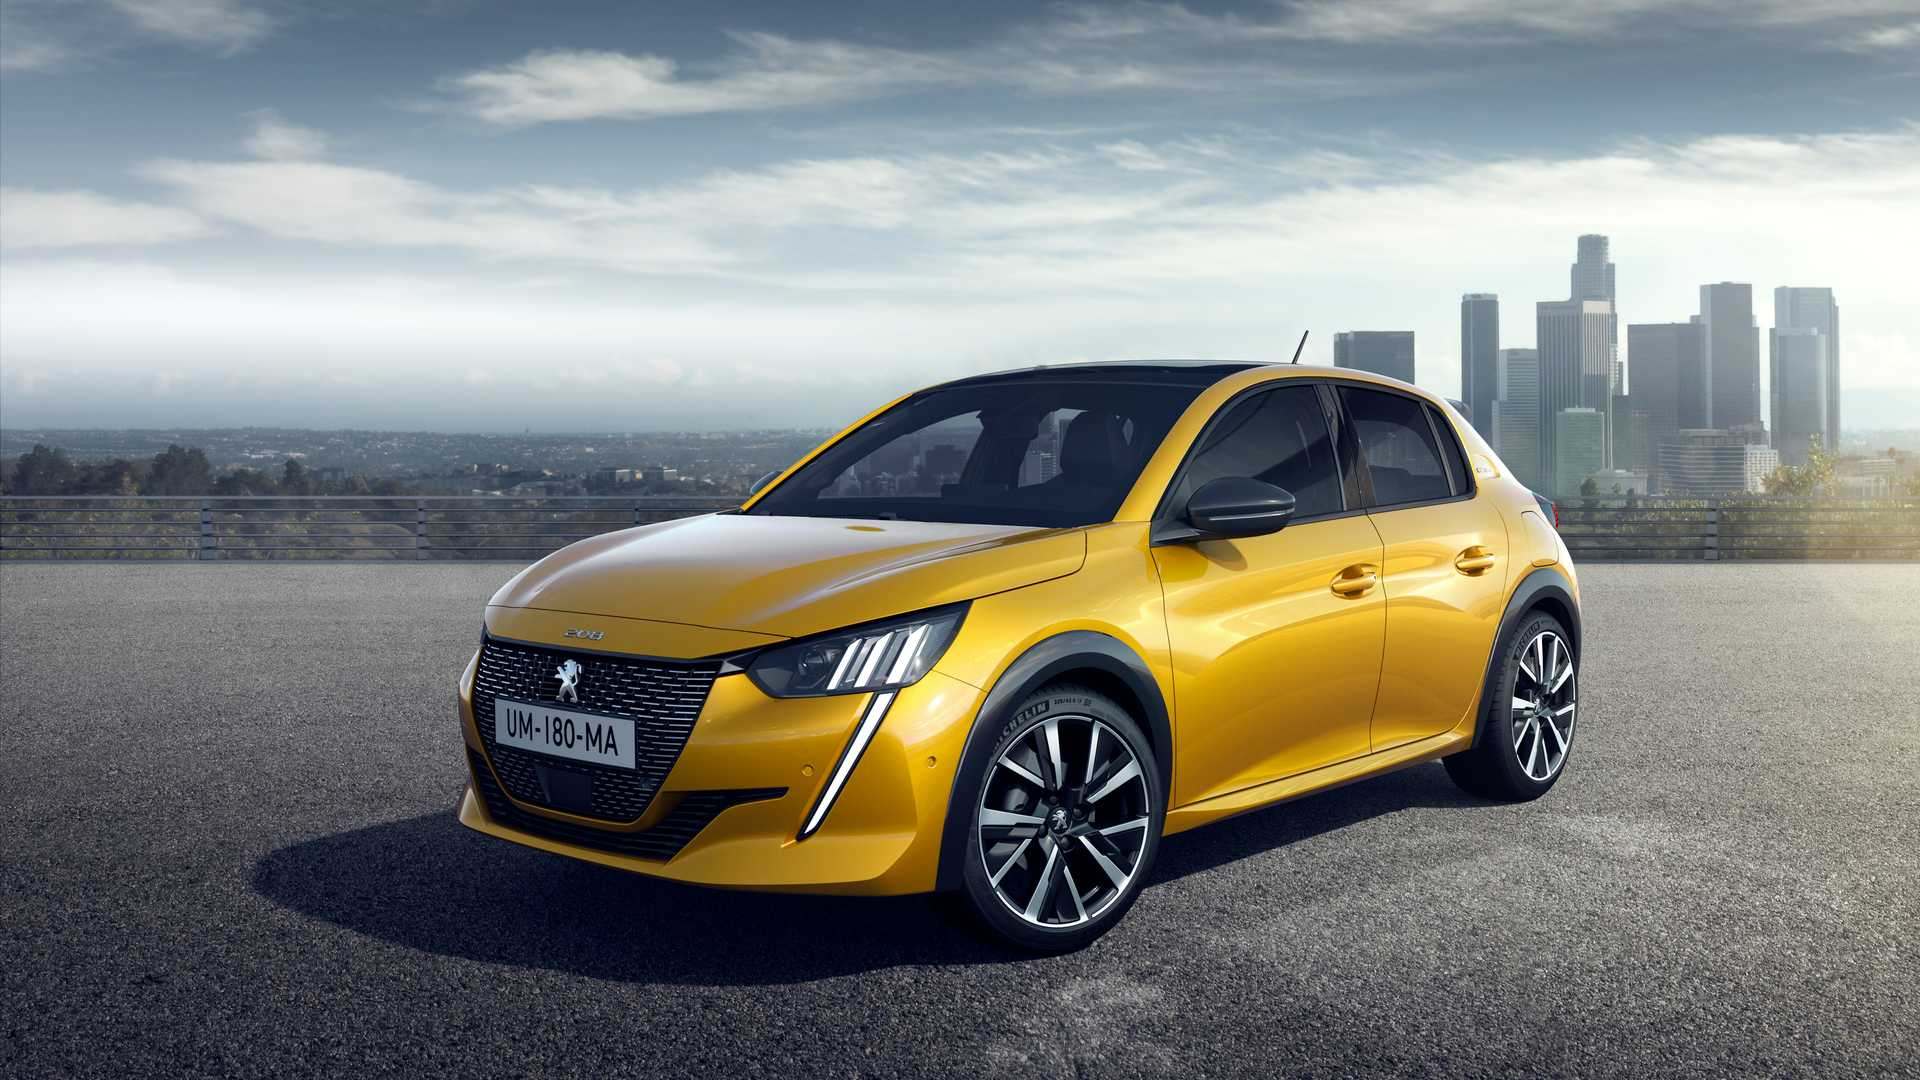 94 All New Motori 2020 Peugeot First Drive